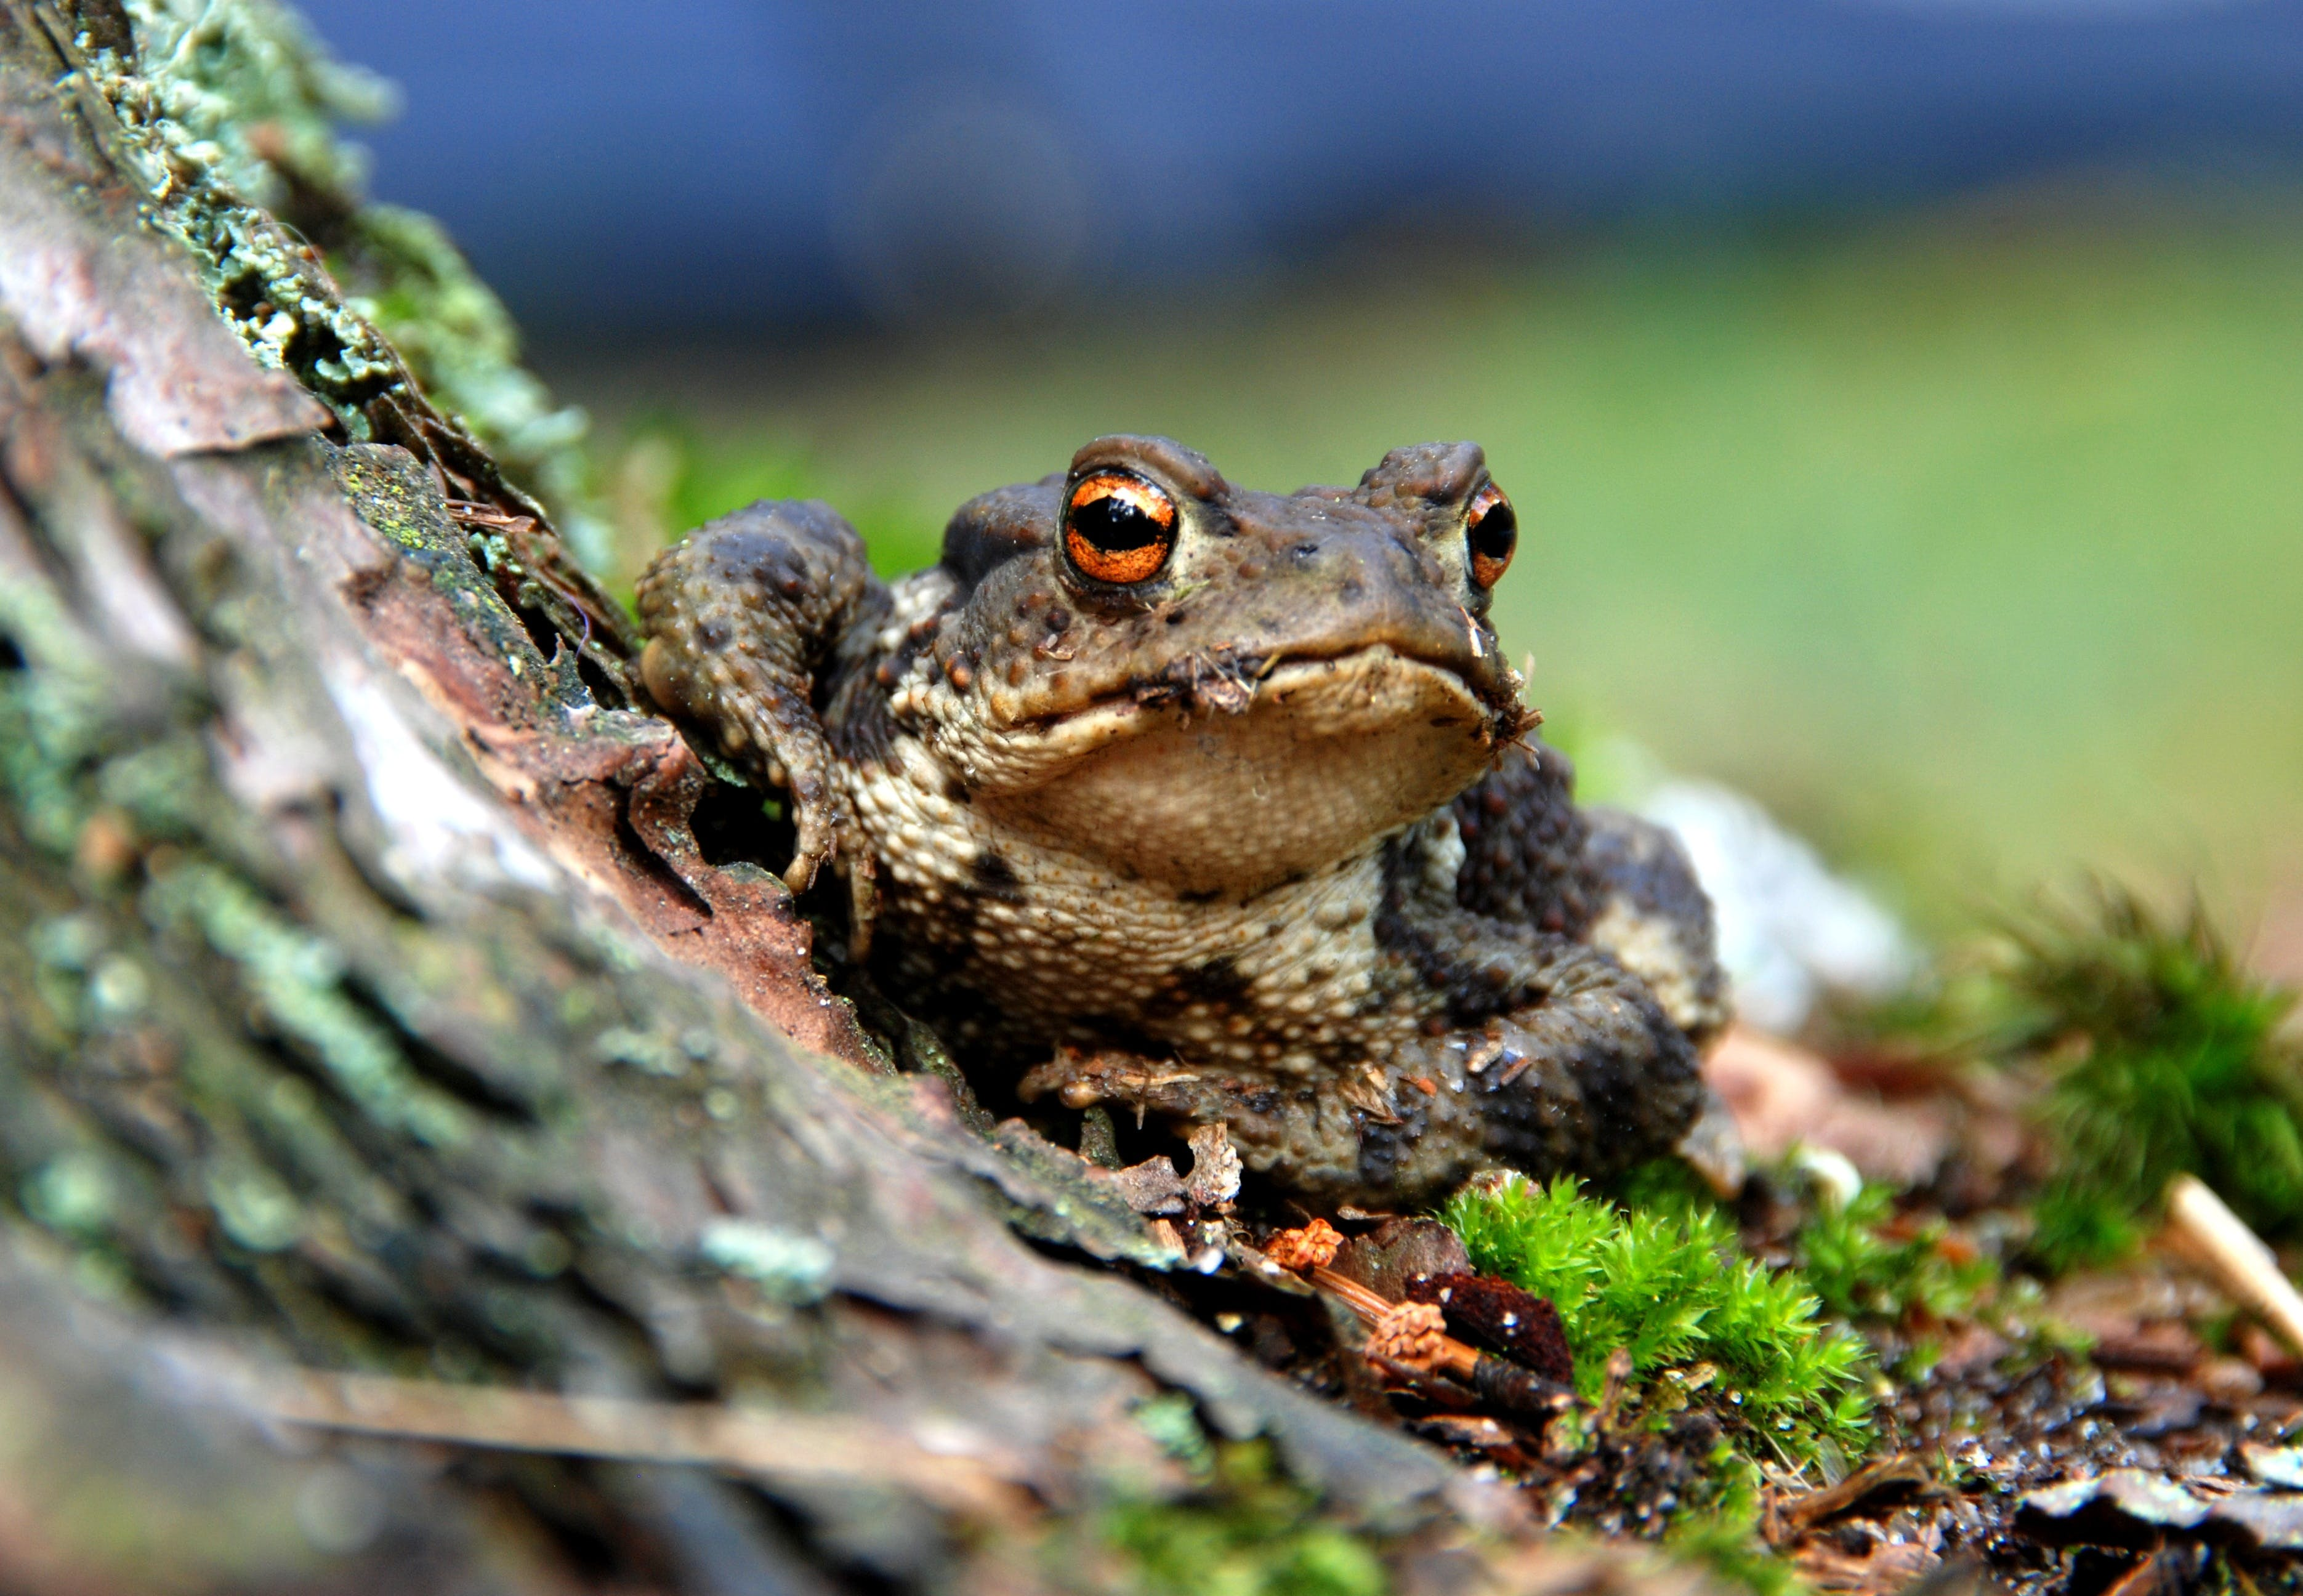 Selective Focus Photography of a Brown and Black Frog